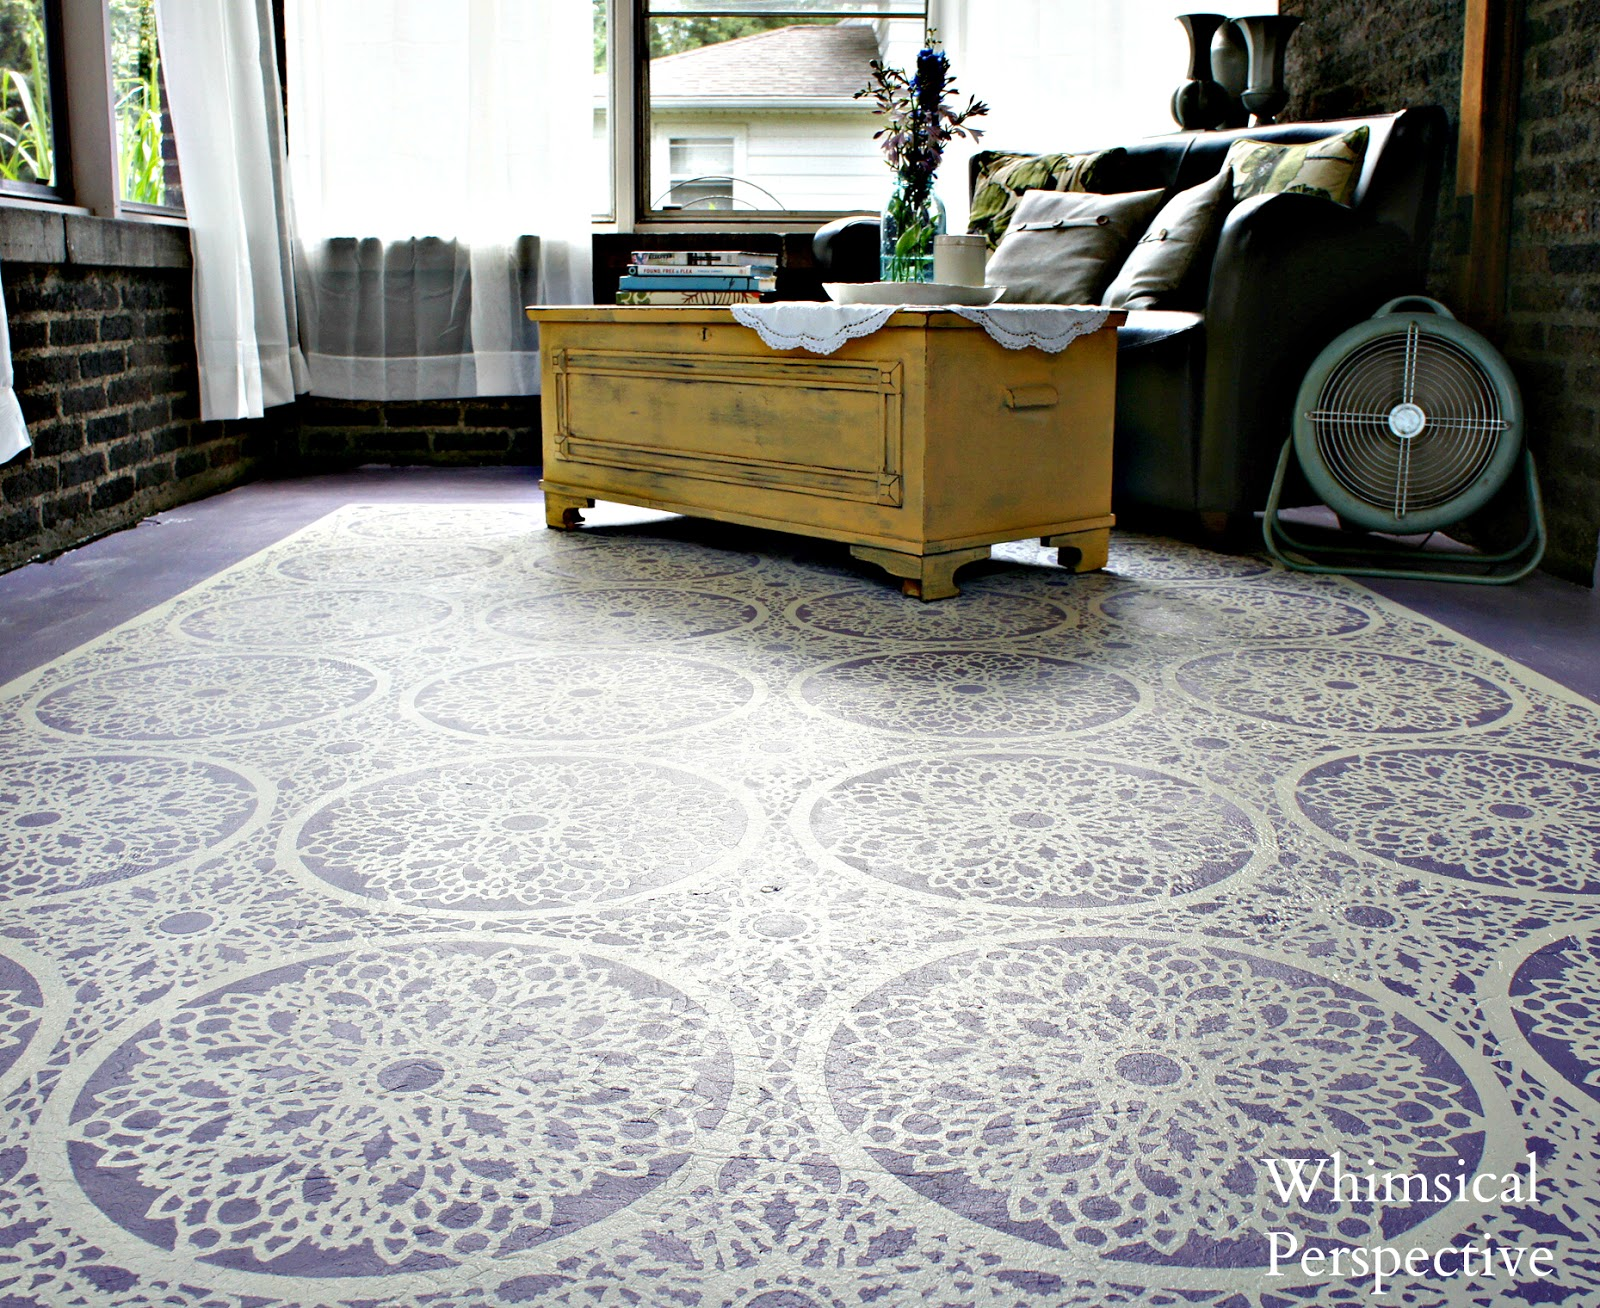 Whimsical Perspective: Stenciled Floor Porch Reveal